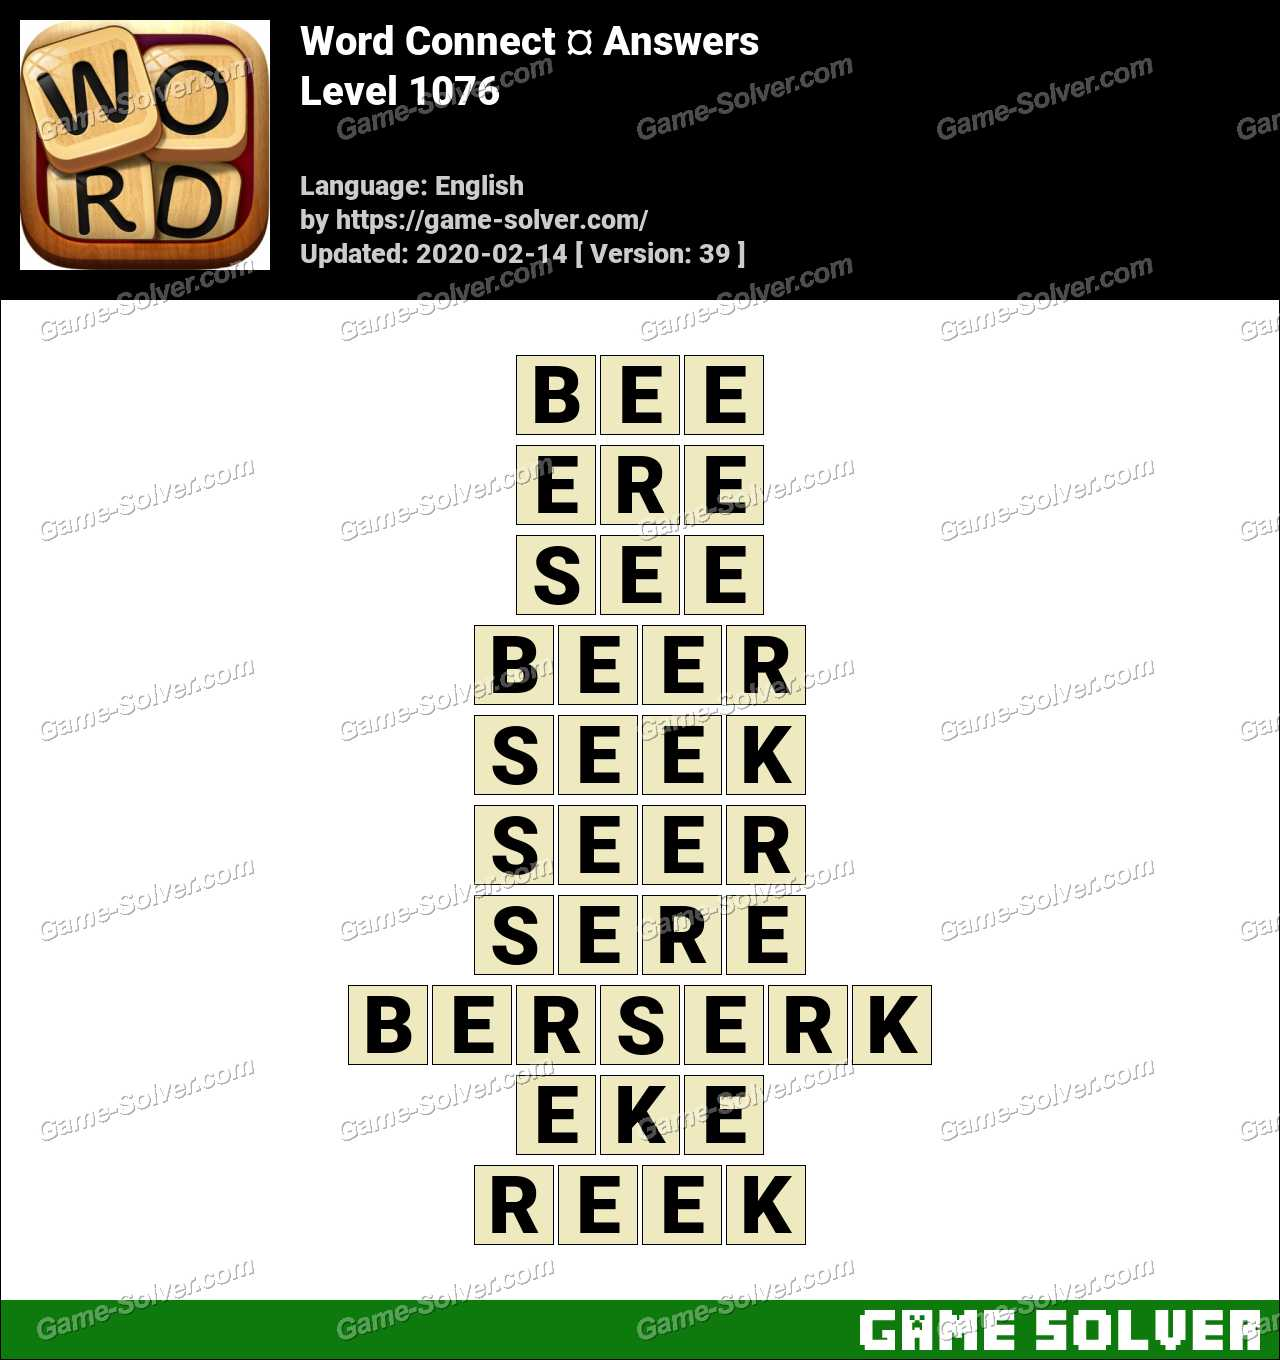 Word Connect Level 1076 Answers